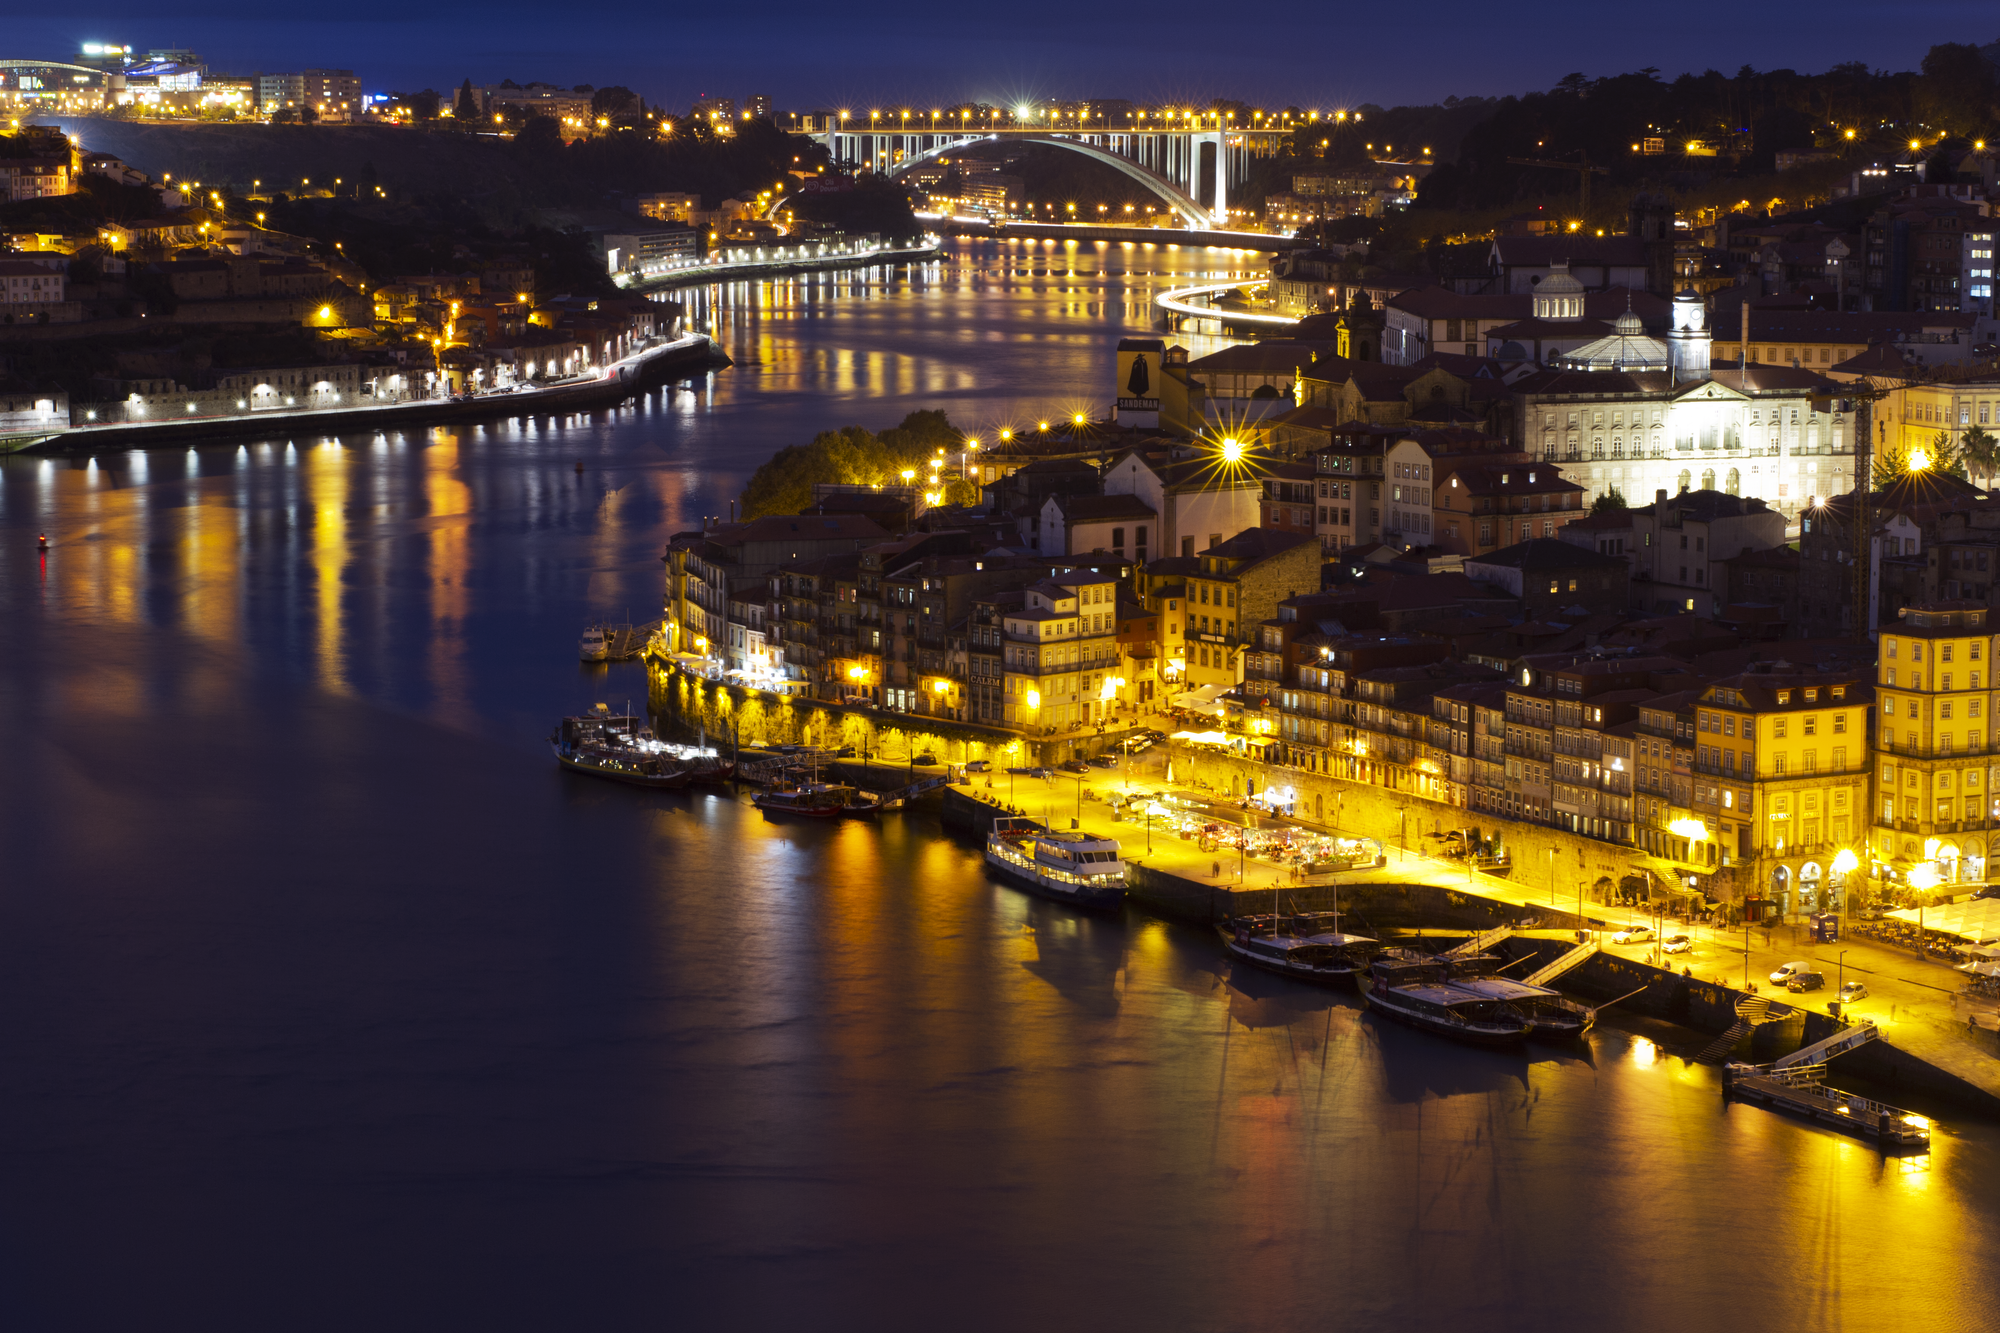 Douro river view in the night.